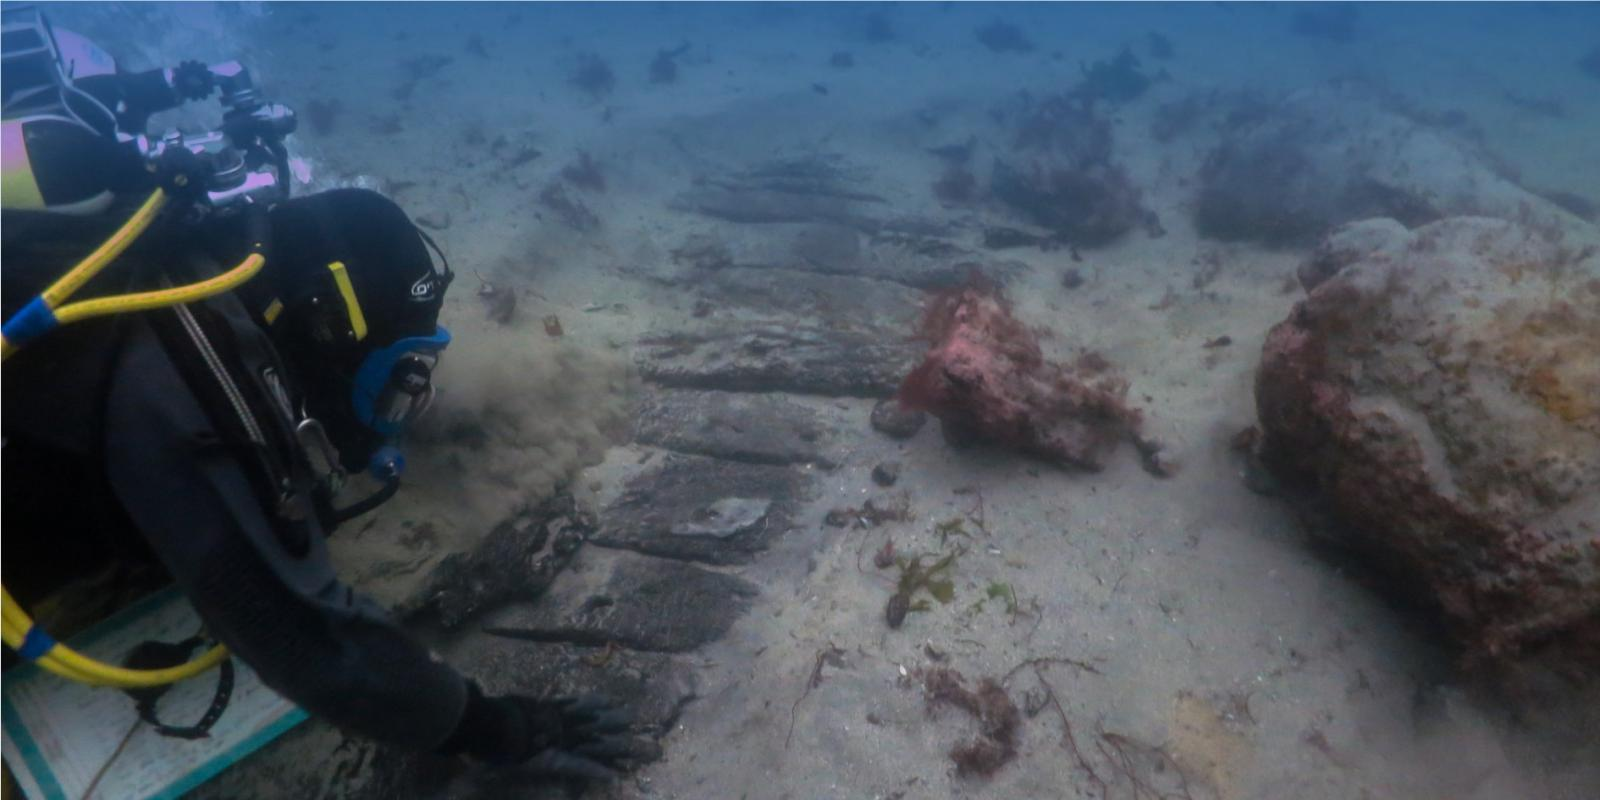 Diver investigating a wreck on the seabed